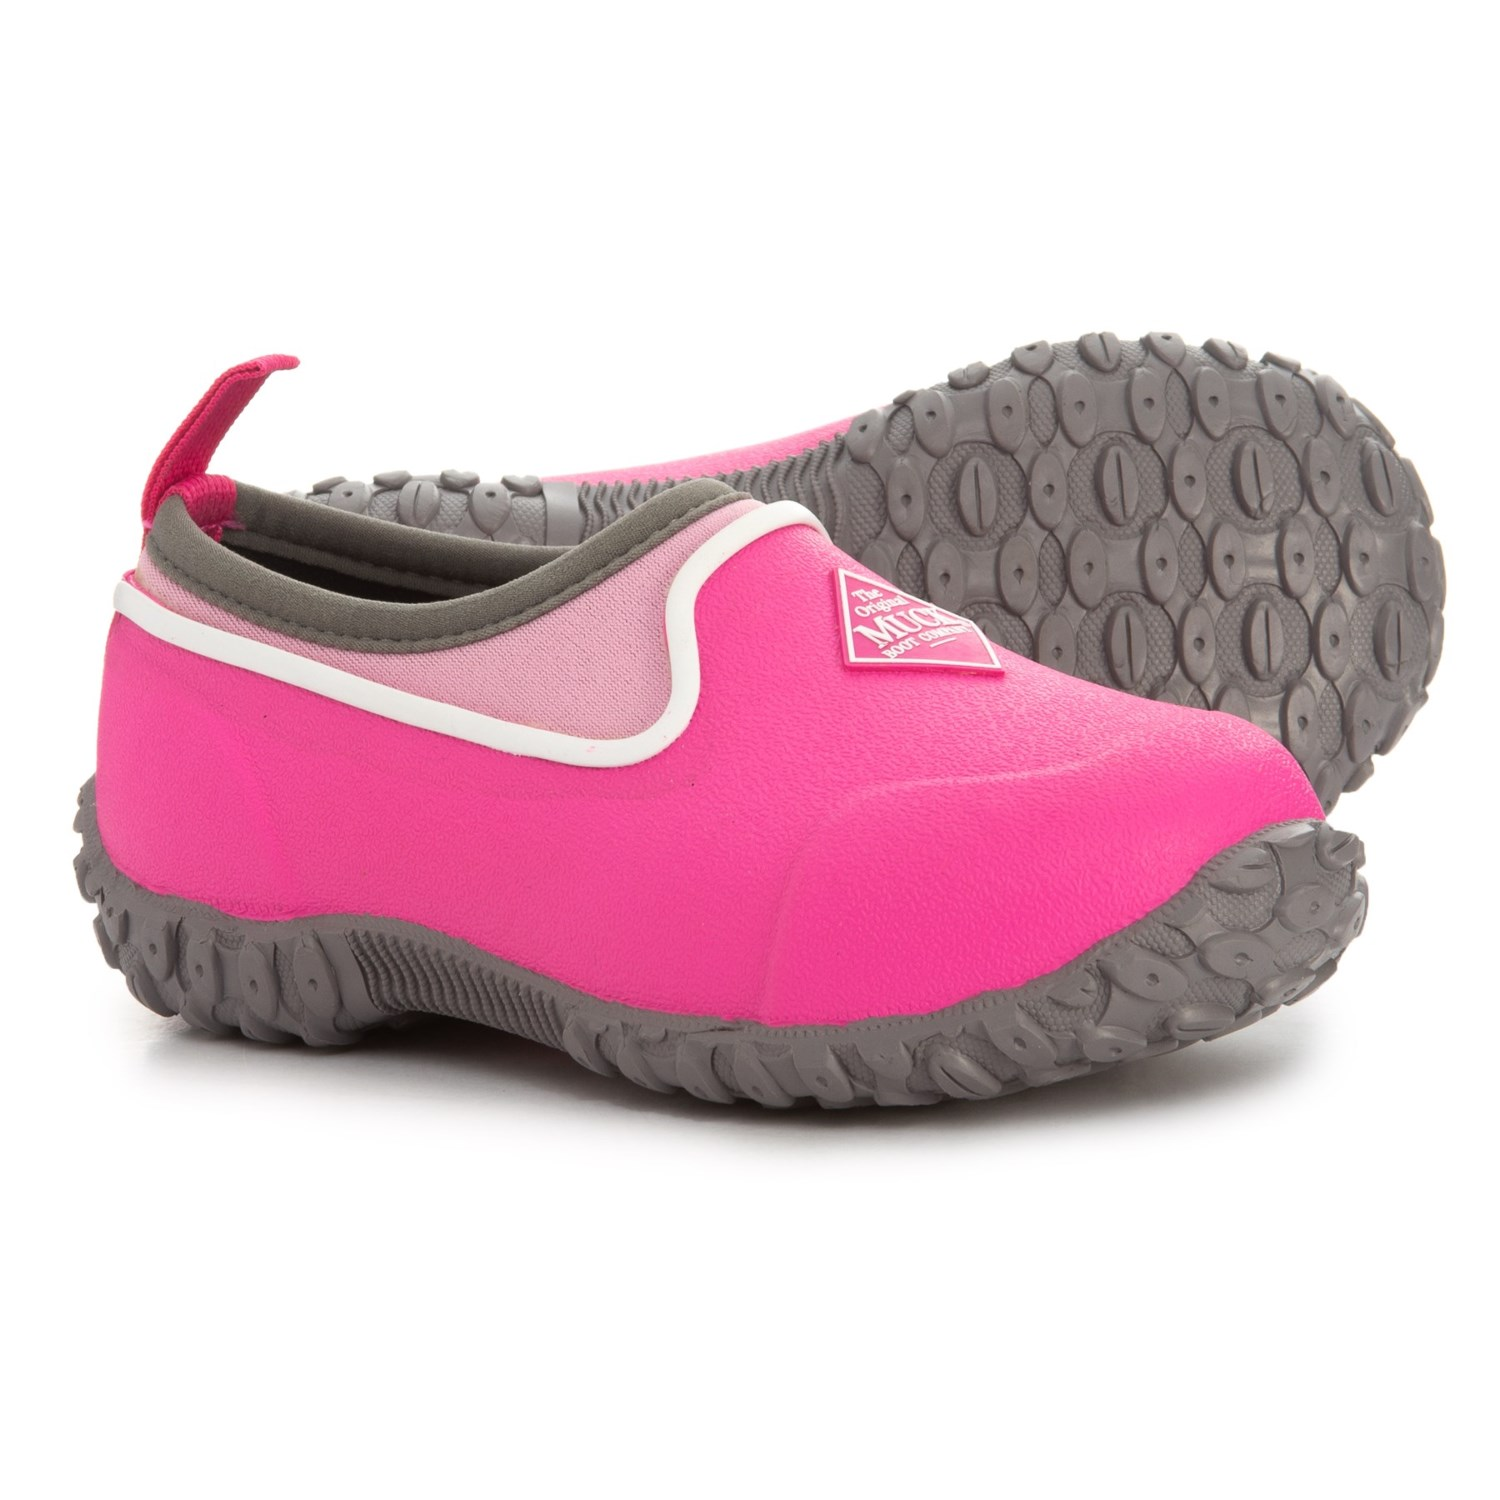 095a4604efe Muck Boot Company Muckster II Low Shoes - Waterproof, Insulated (For Girls)